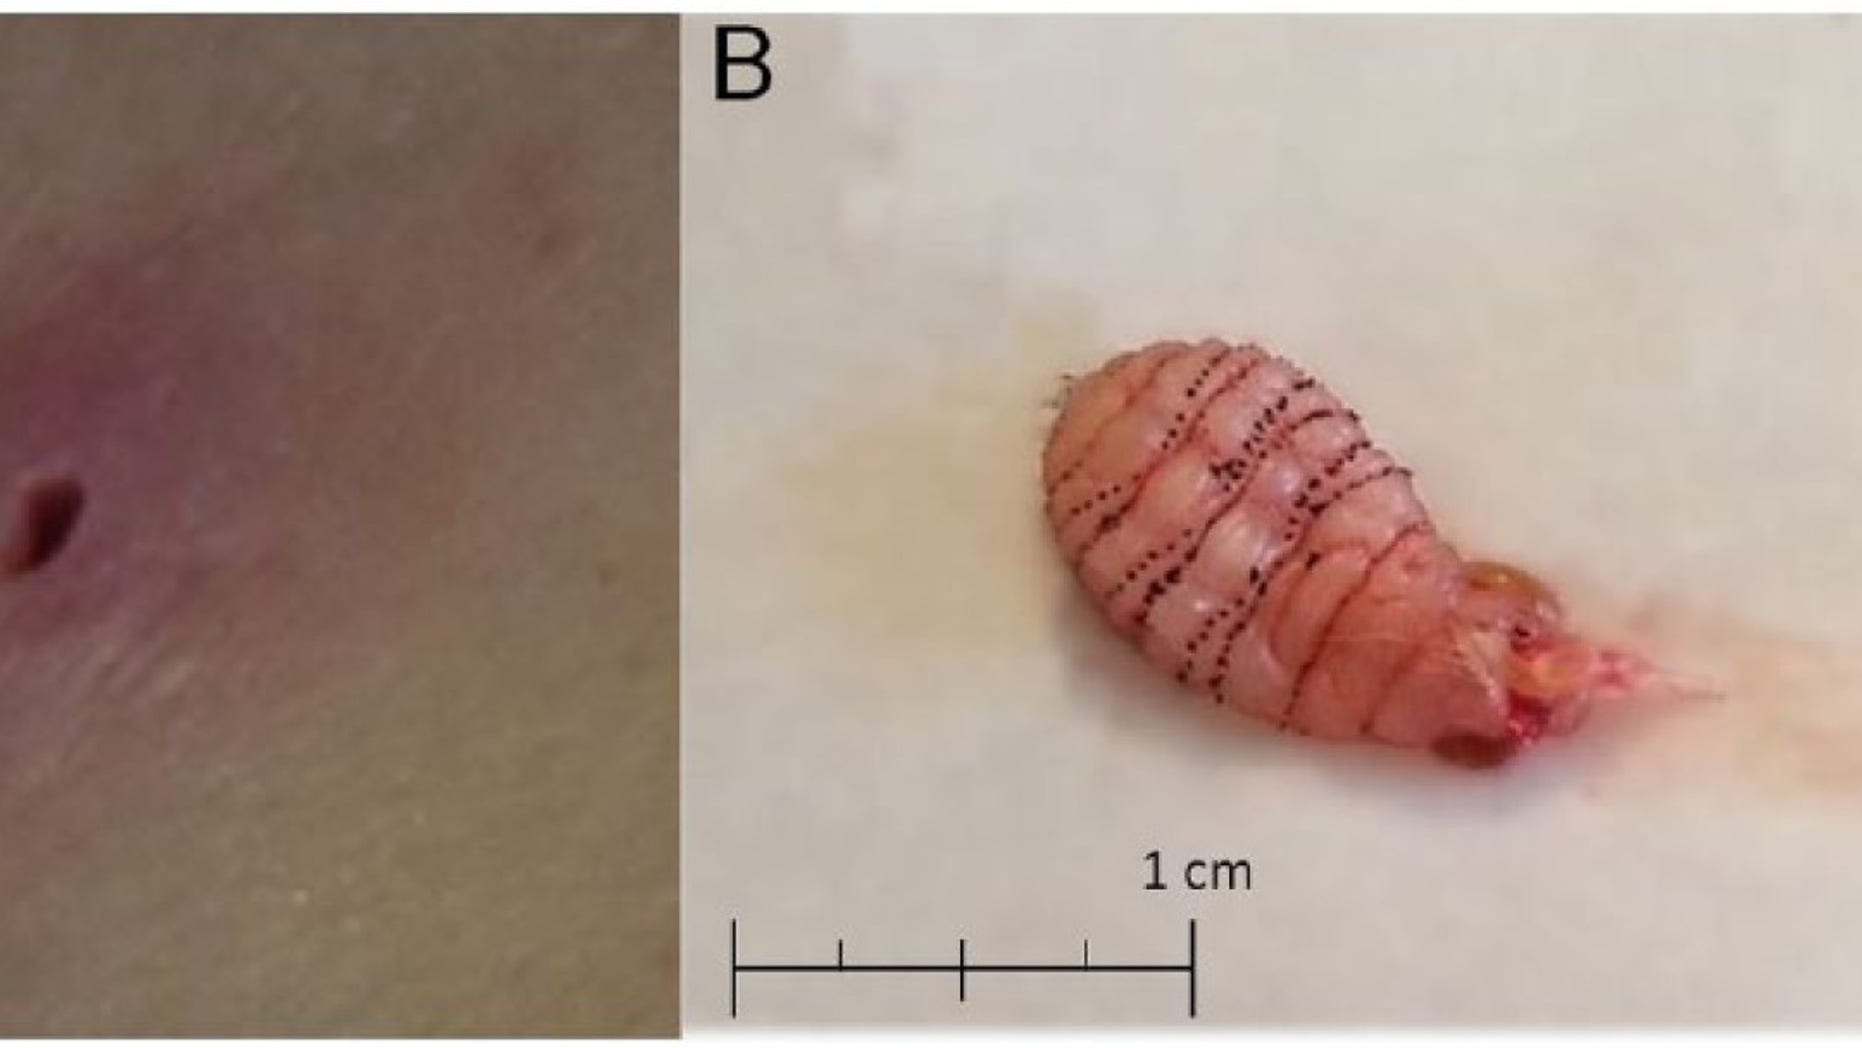 The image on the left shows the lesion on the woman's skin. The image on the right shows the larva after it was removed. The rows of black spines make it difficult to extract.